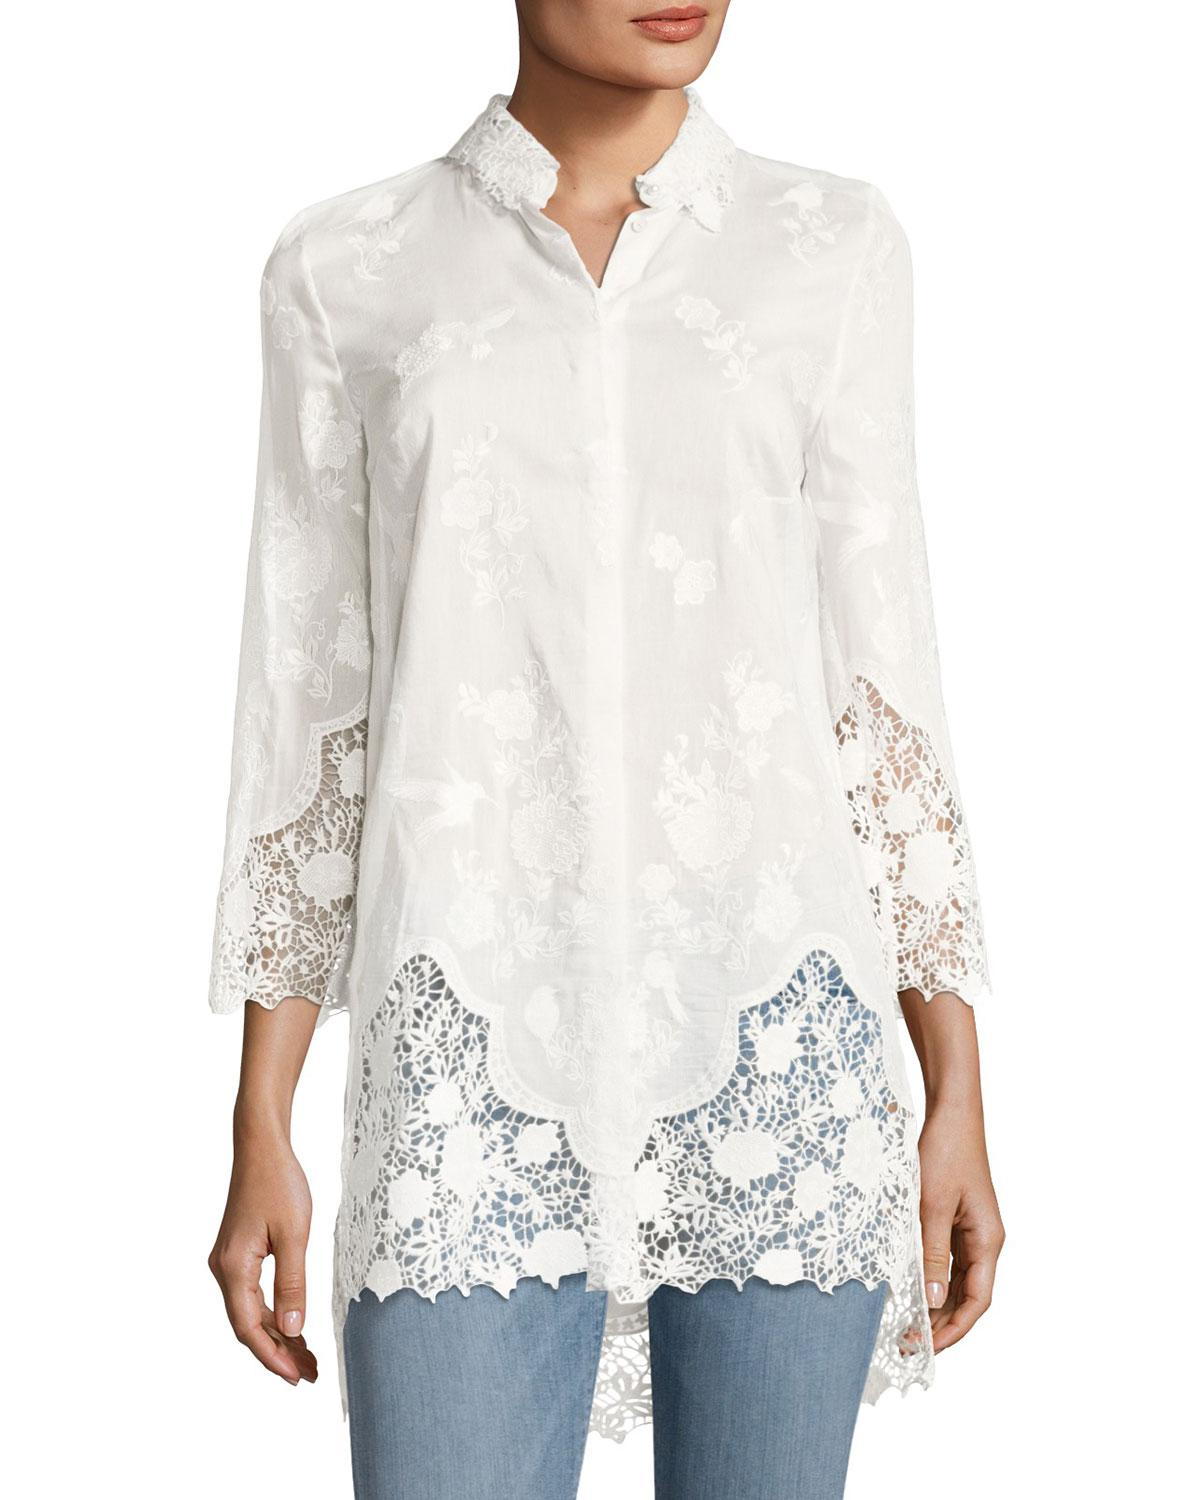 25983322a012 Elie Tahari Clark Floral Lace Long Blouse in White - Lyst